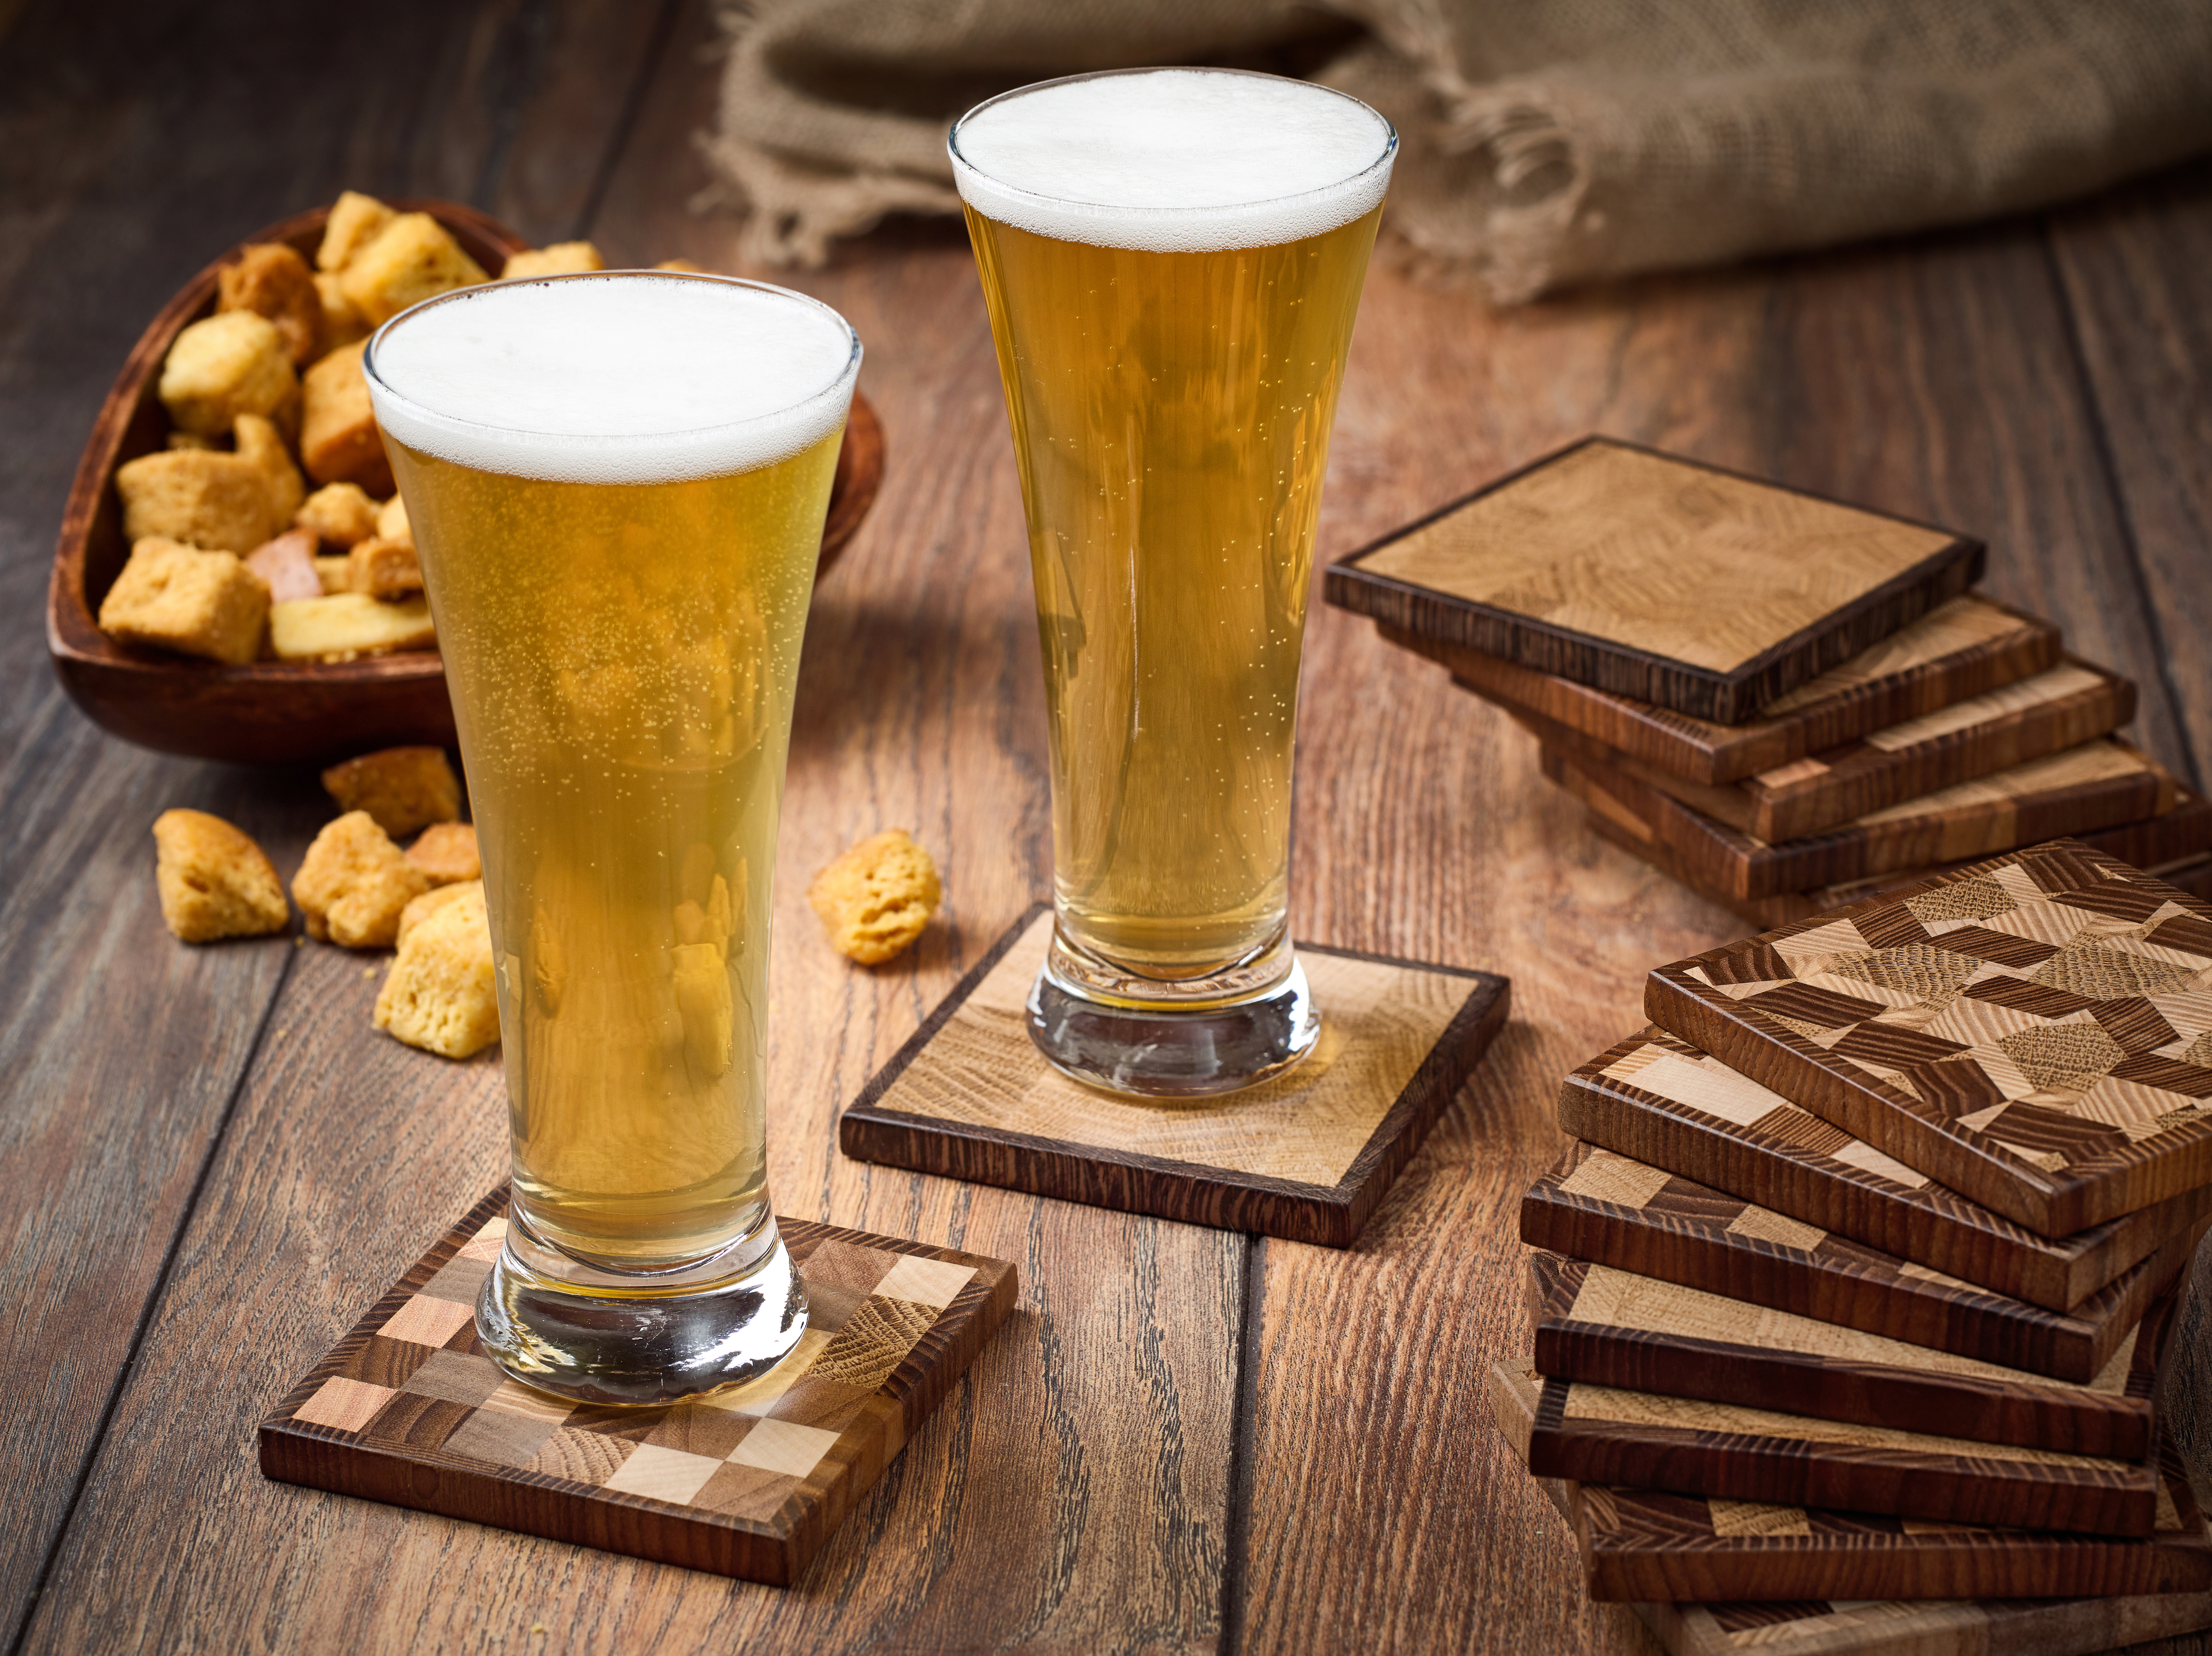 Two glasses of light beer and crackers snacks on a wooden table.